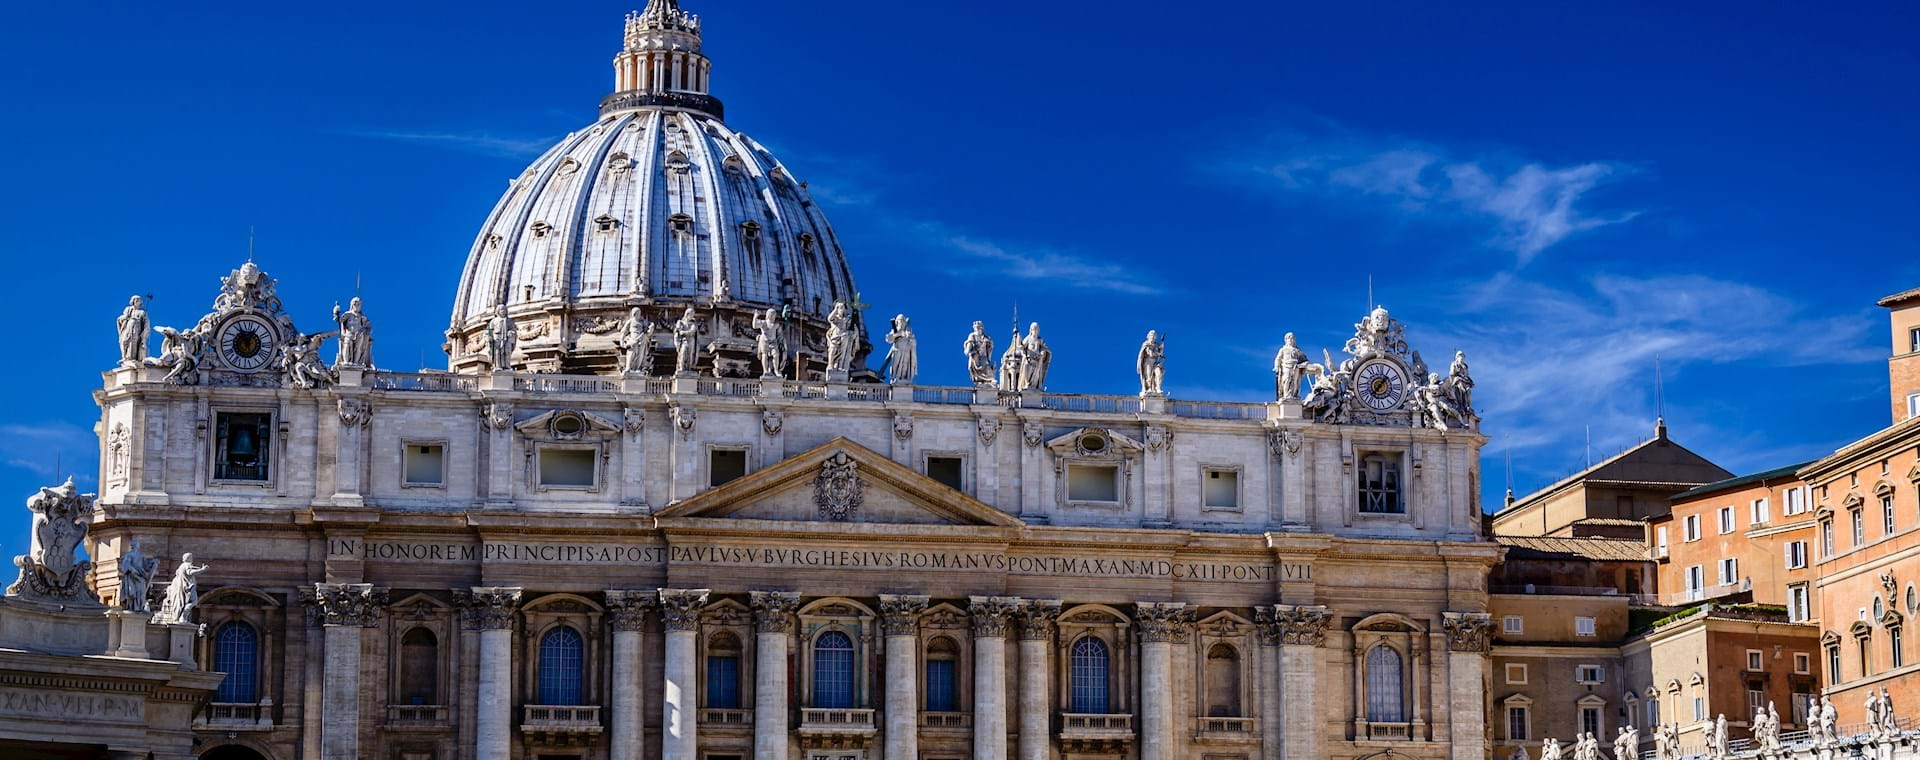 St. Peter's Basilica on a sunny day